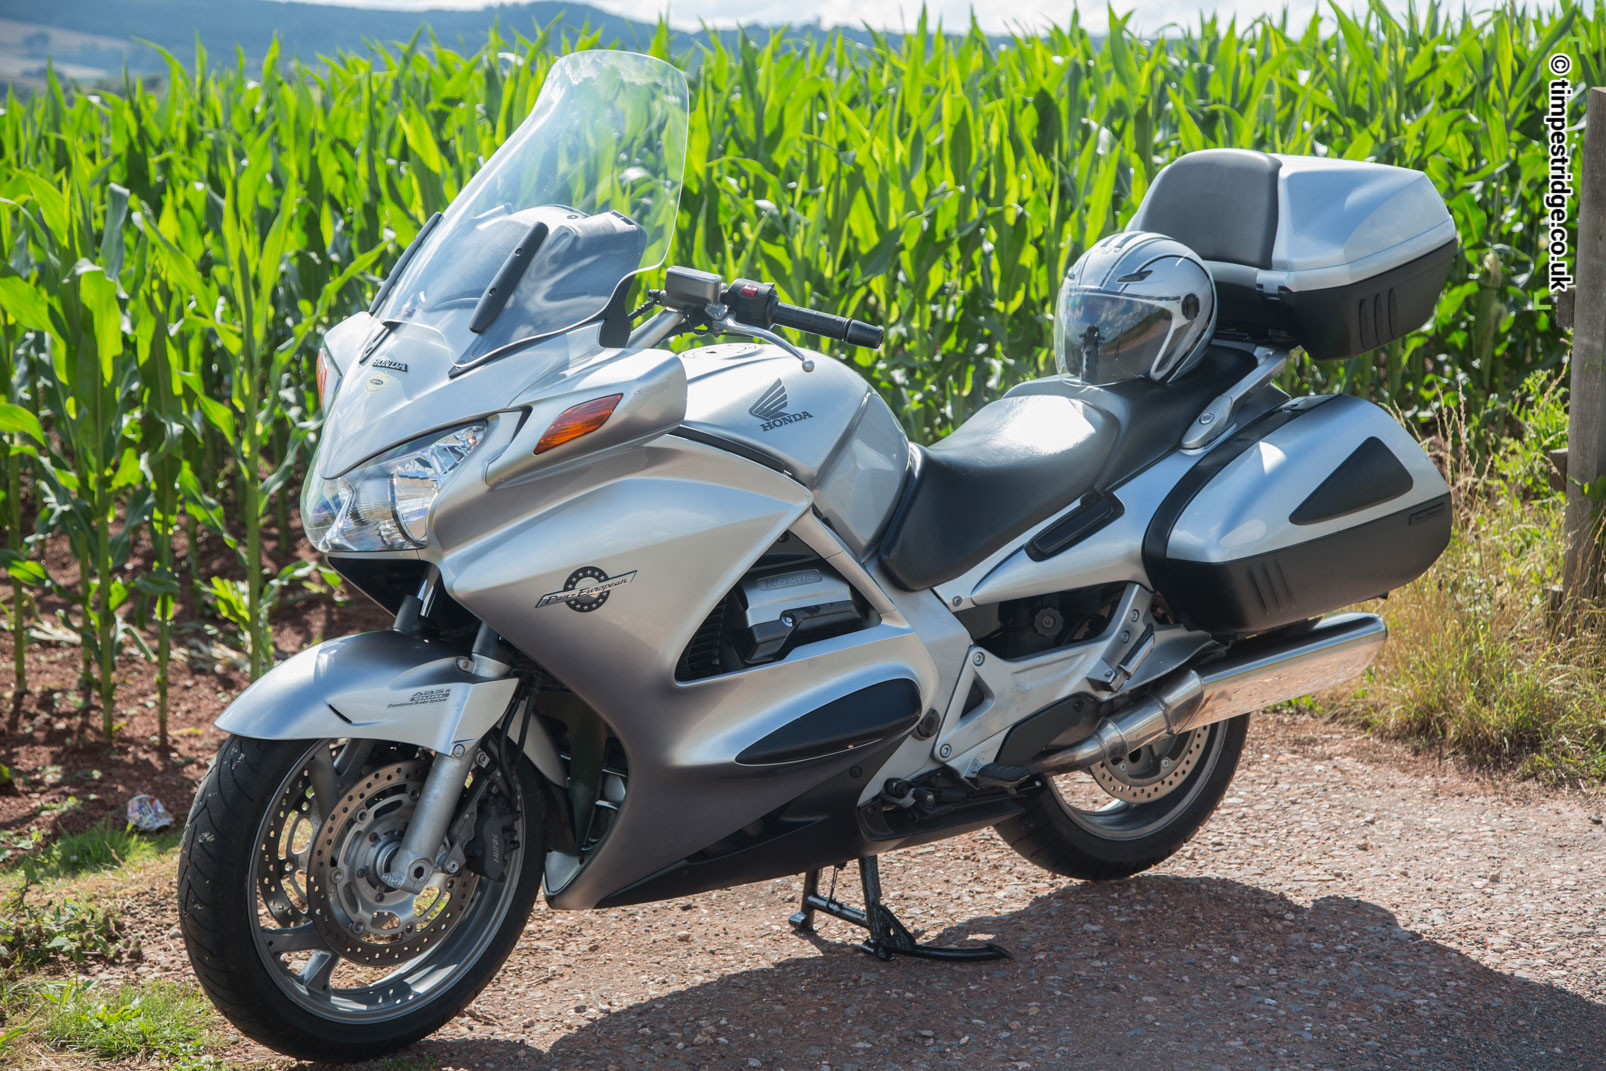 Sensational A Short Owners Review Of The 2005 Honda St1300 Ncnpc Chair Design For Home Ncnpcorg